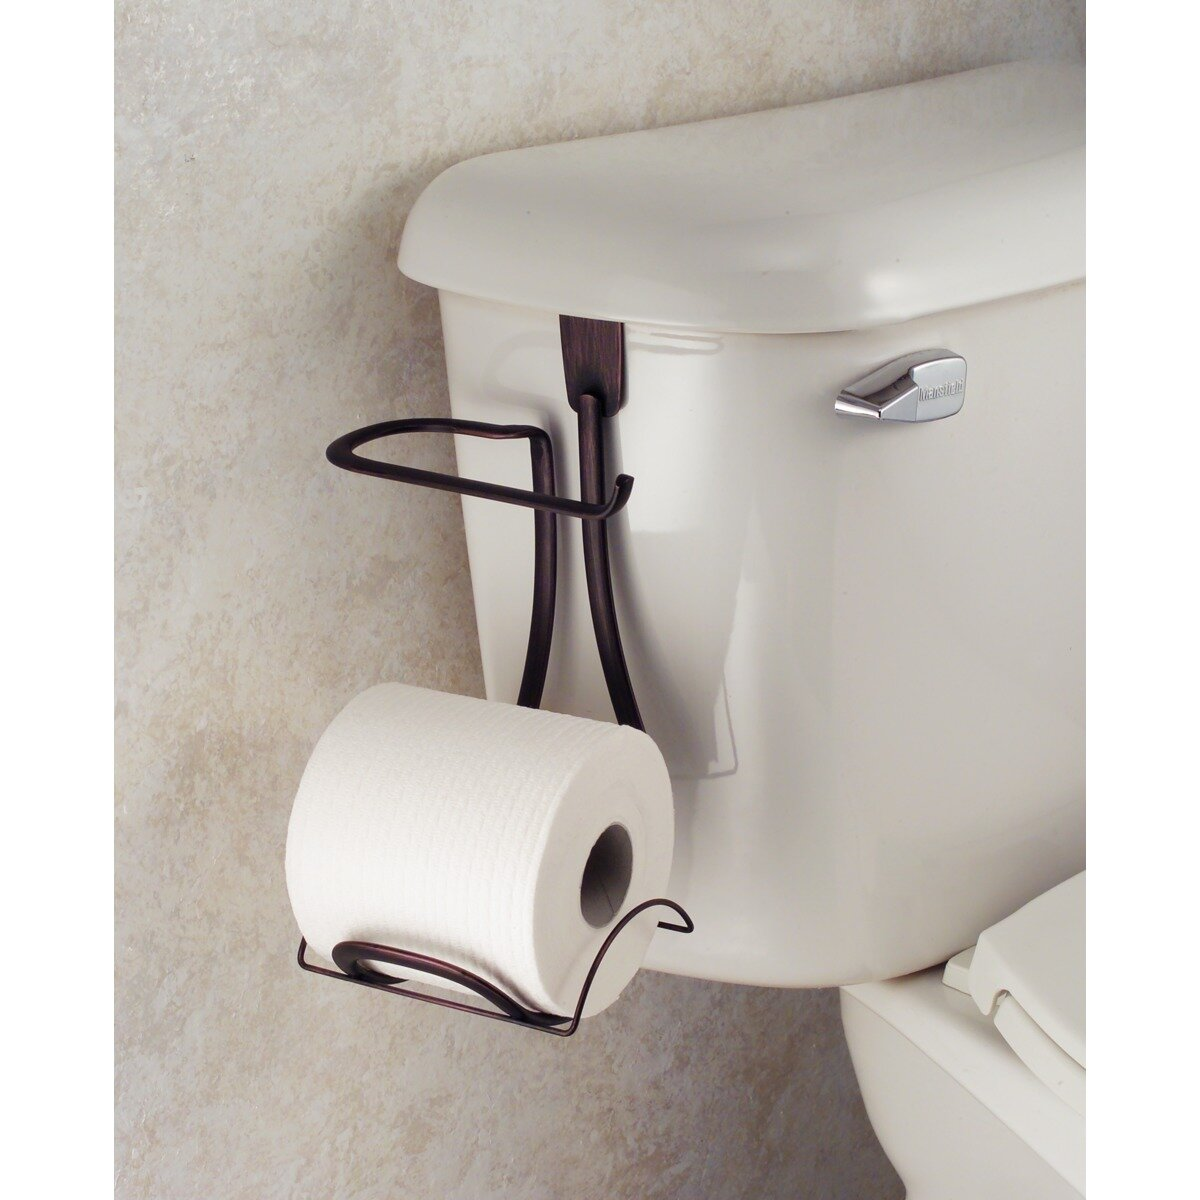 Interdesign axis toilet paper holder reviews wayfair - Interdesign toilet paper holder ...